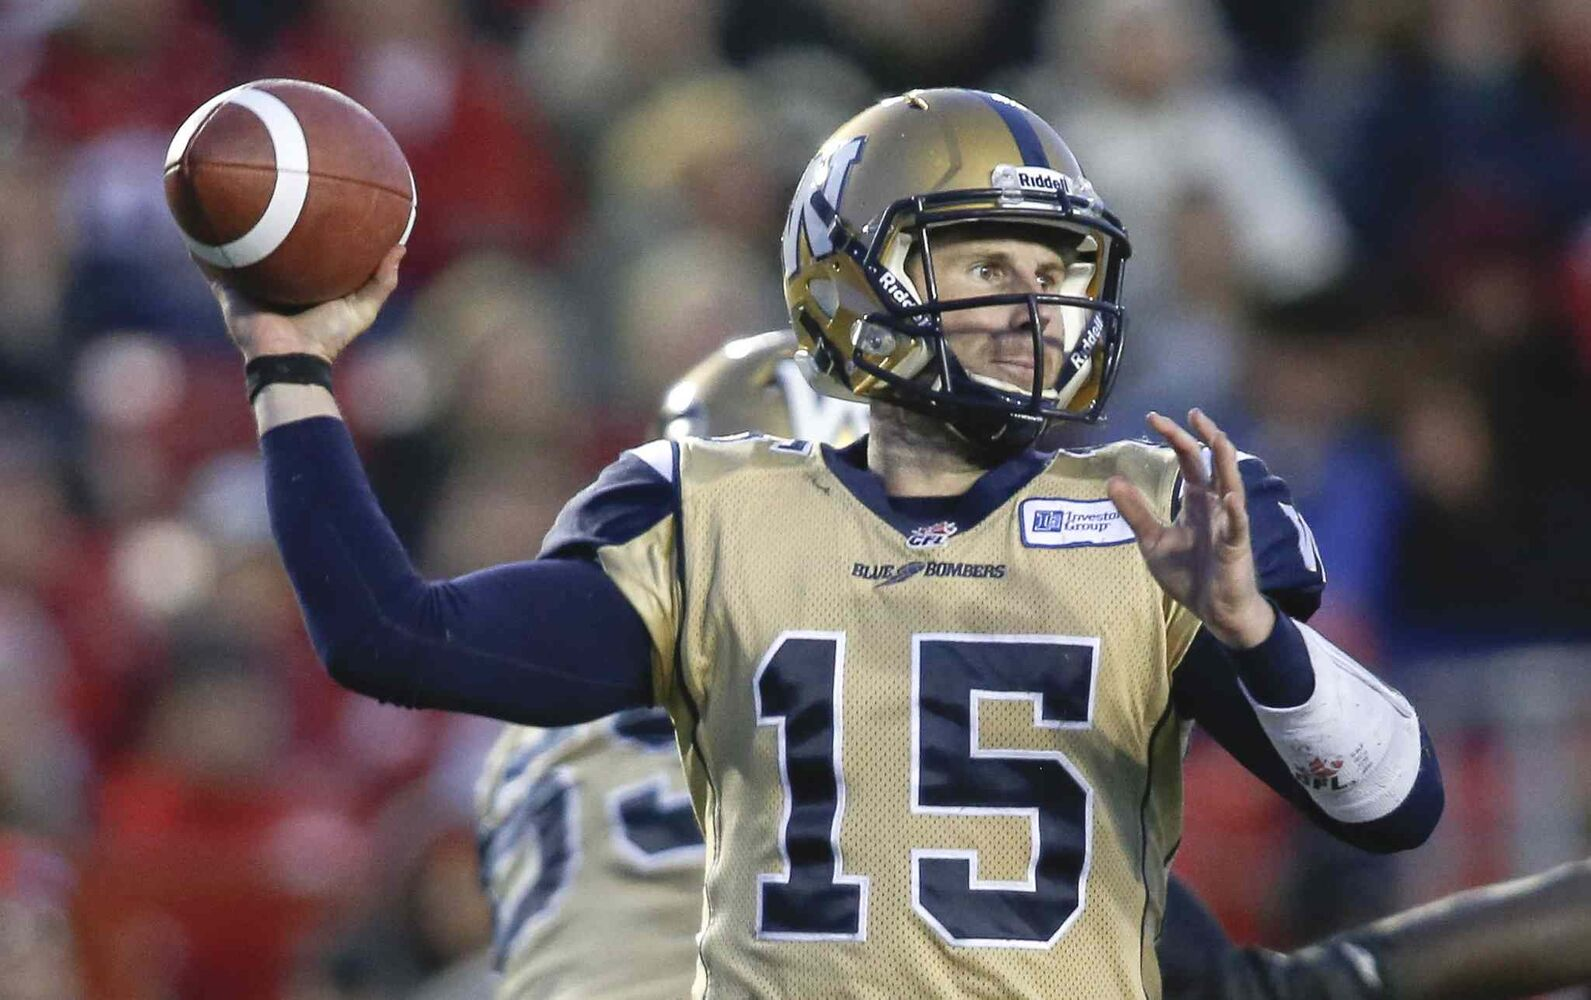 Winnipeg Blue Bombers quarterback Max Hall throws the ball during the second half. Hall completed 15 of 34 passes for 147 yards and with one interception. (Jeff McIntosh / The Canadian Press)